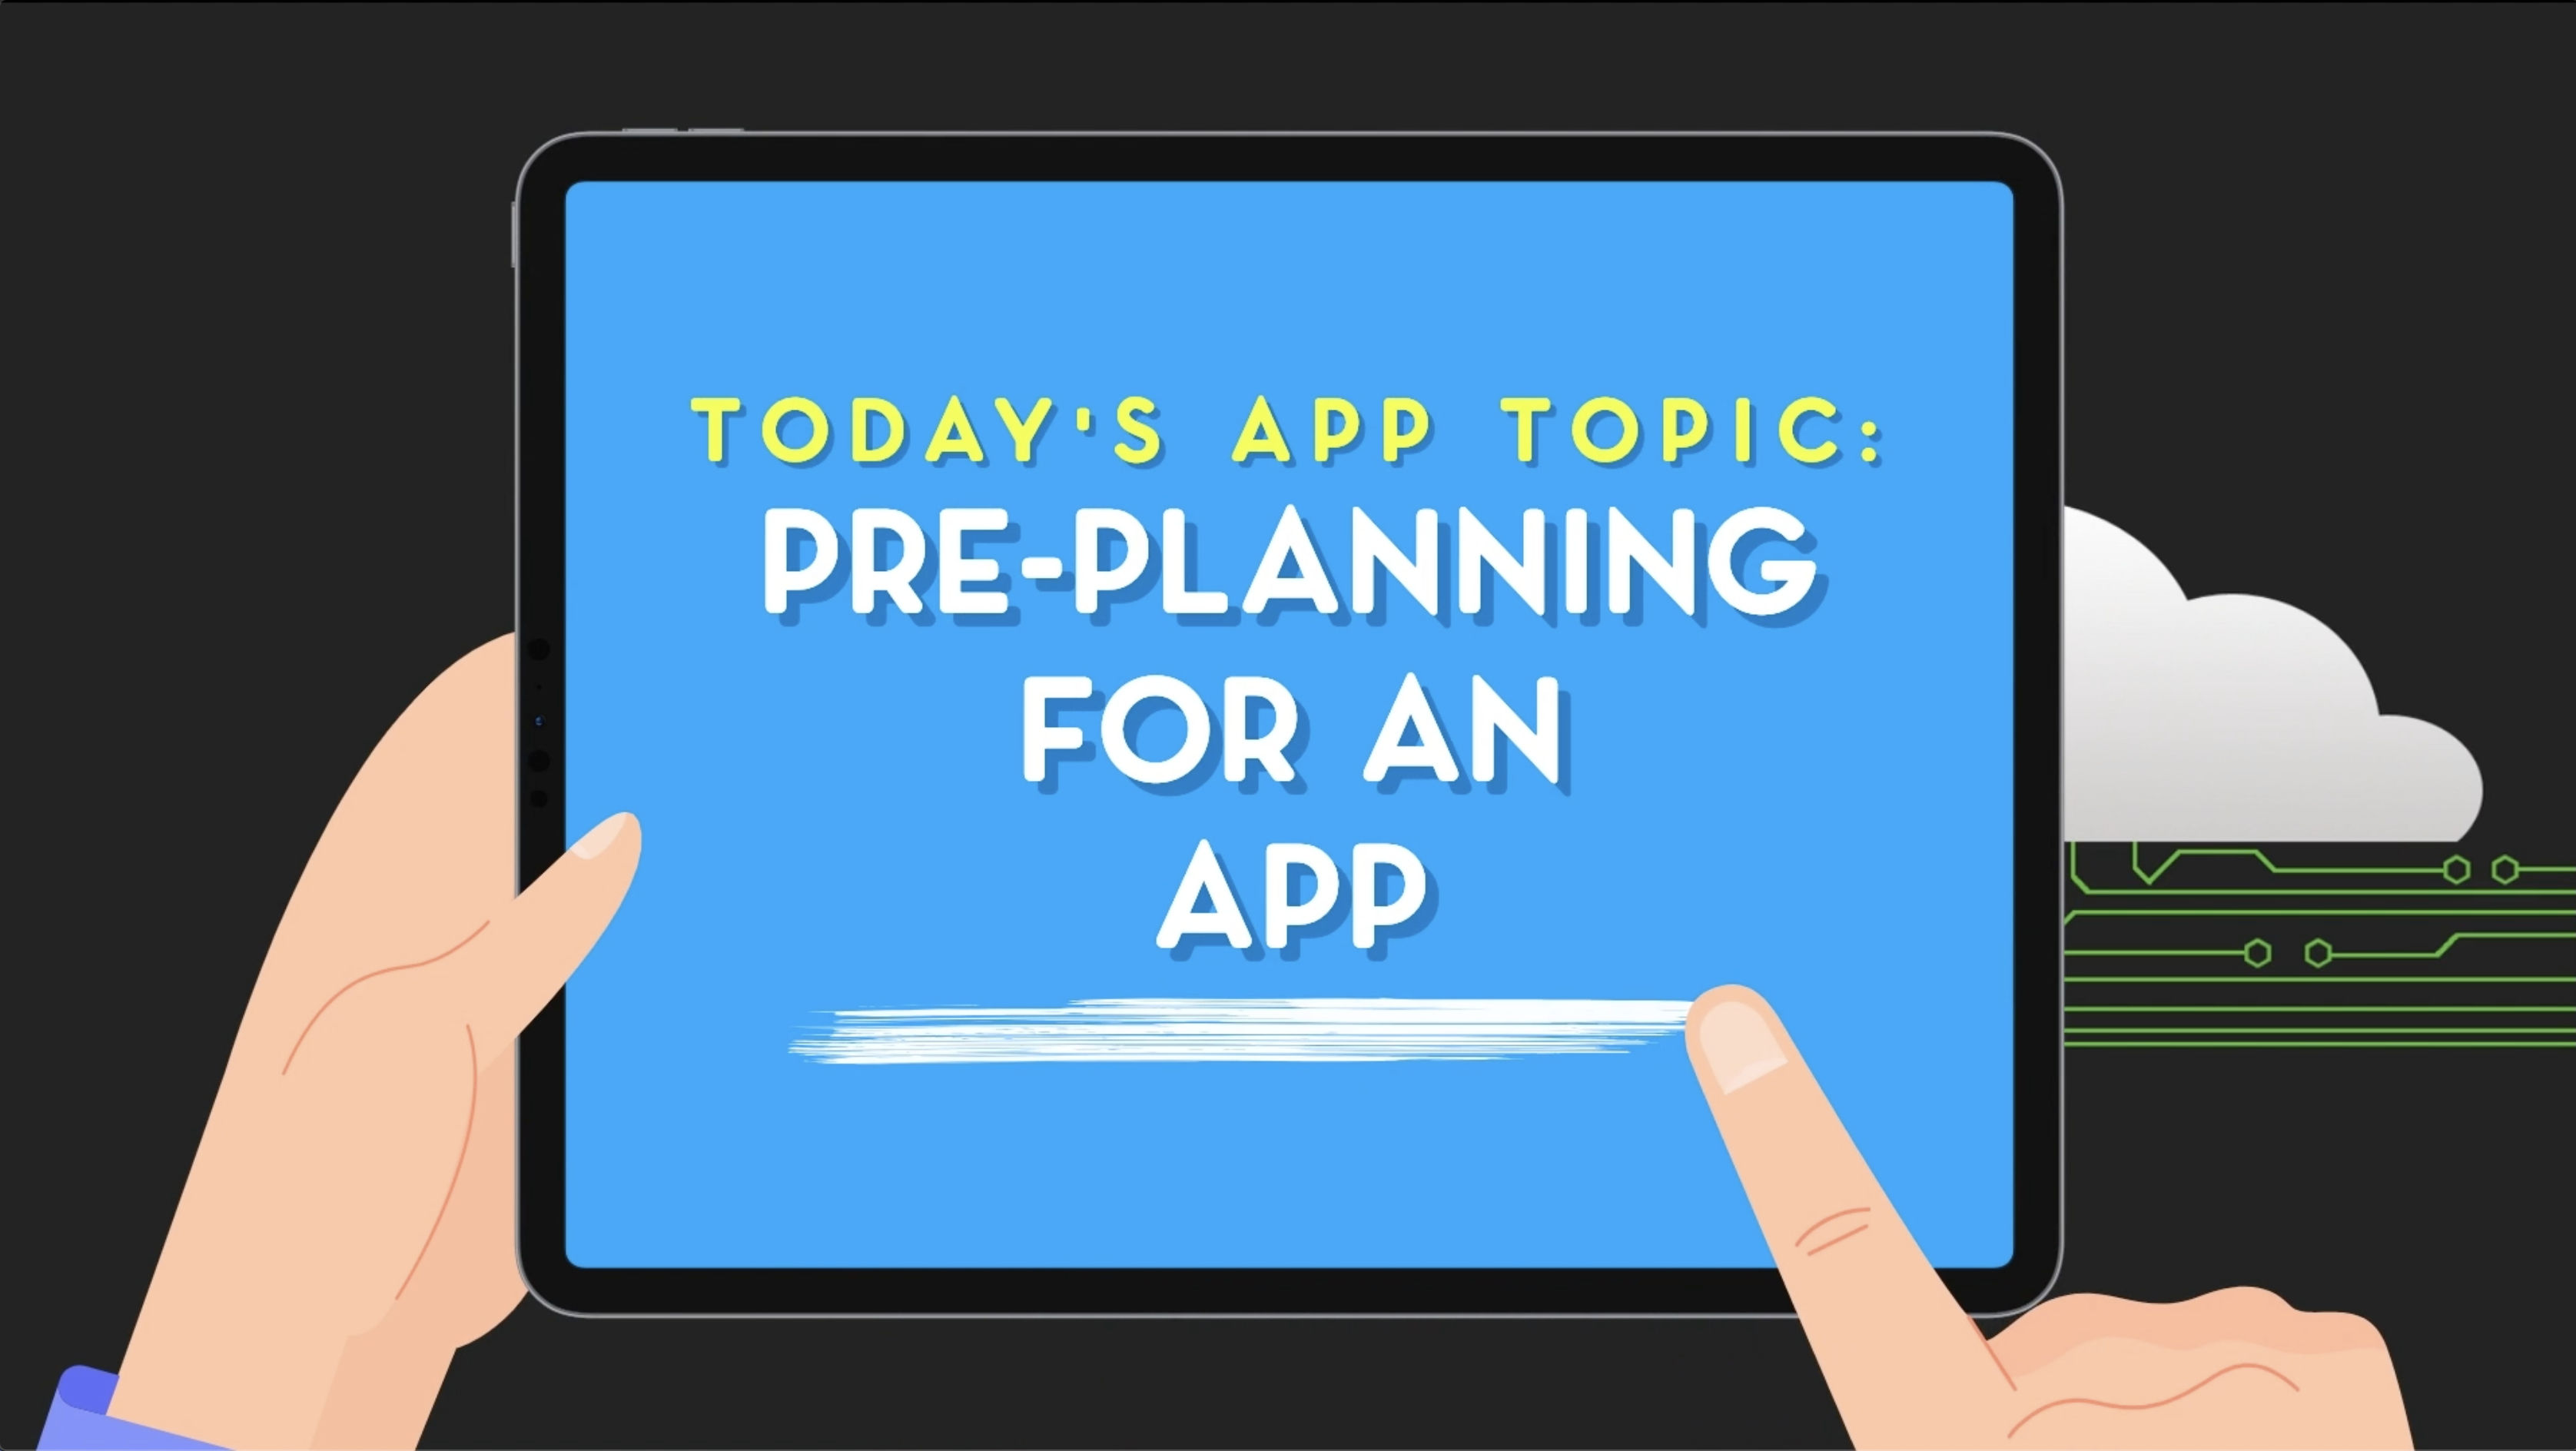 """INSPIRED"" by the Minute: ""Pre-Planning for an App"""